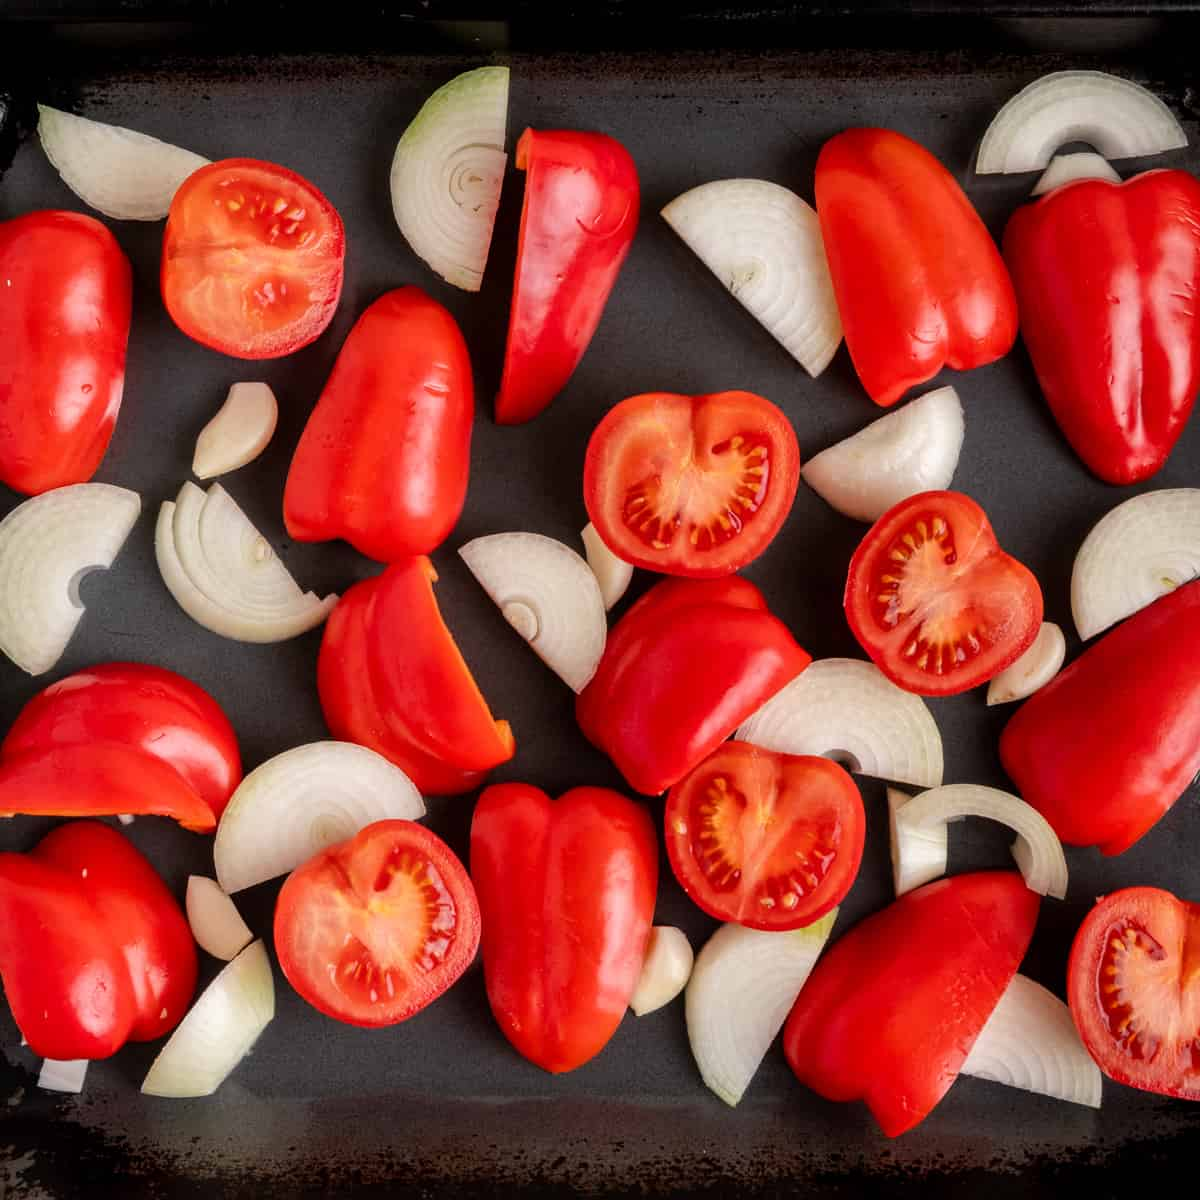 Large chunks of red peppers, tomatoes and onions and some whole garlic cloves on a roasting tray.